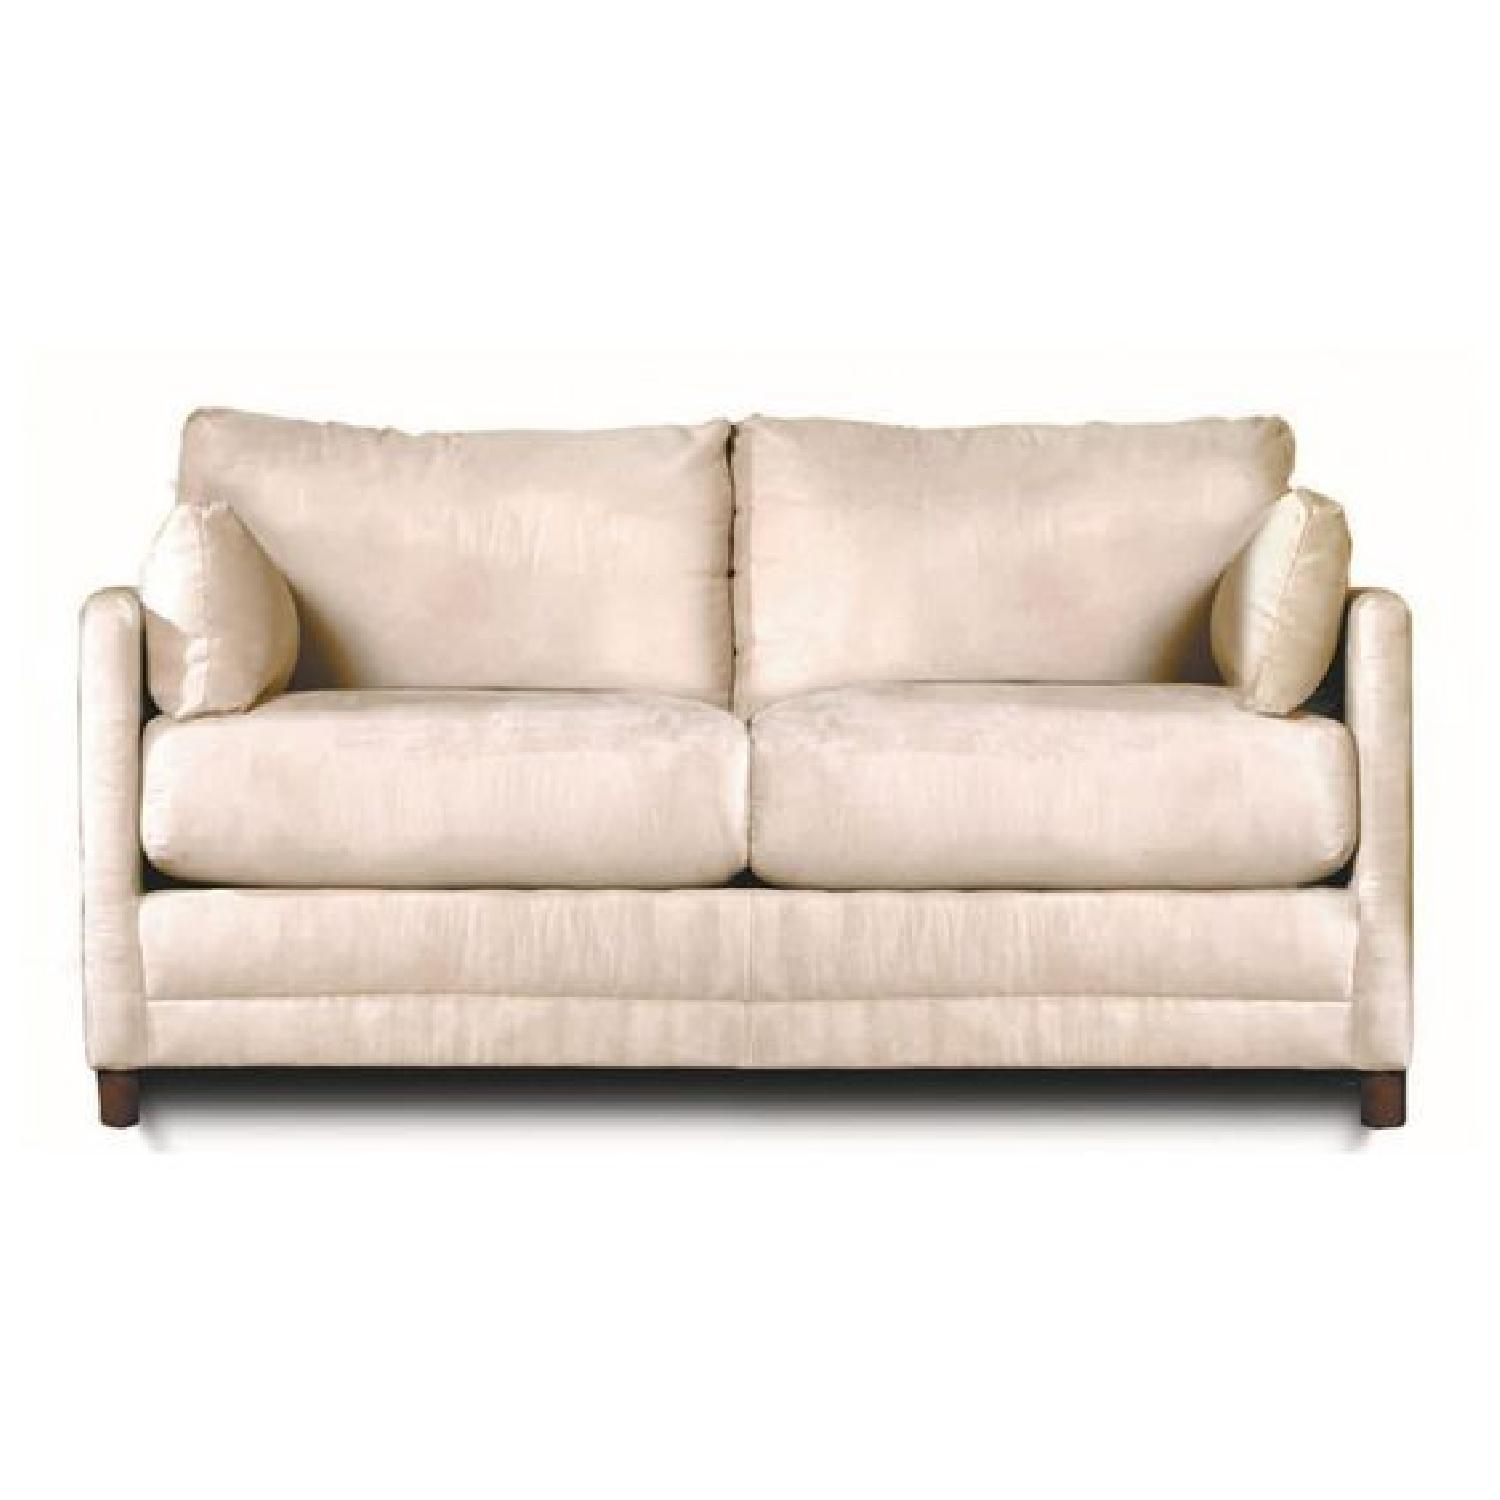 Jennifer Convertible Jennipedic Sleeper Loveseat